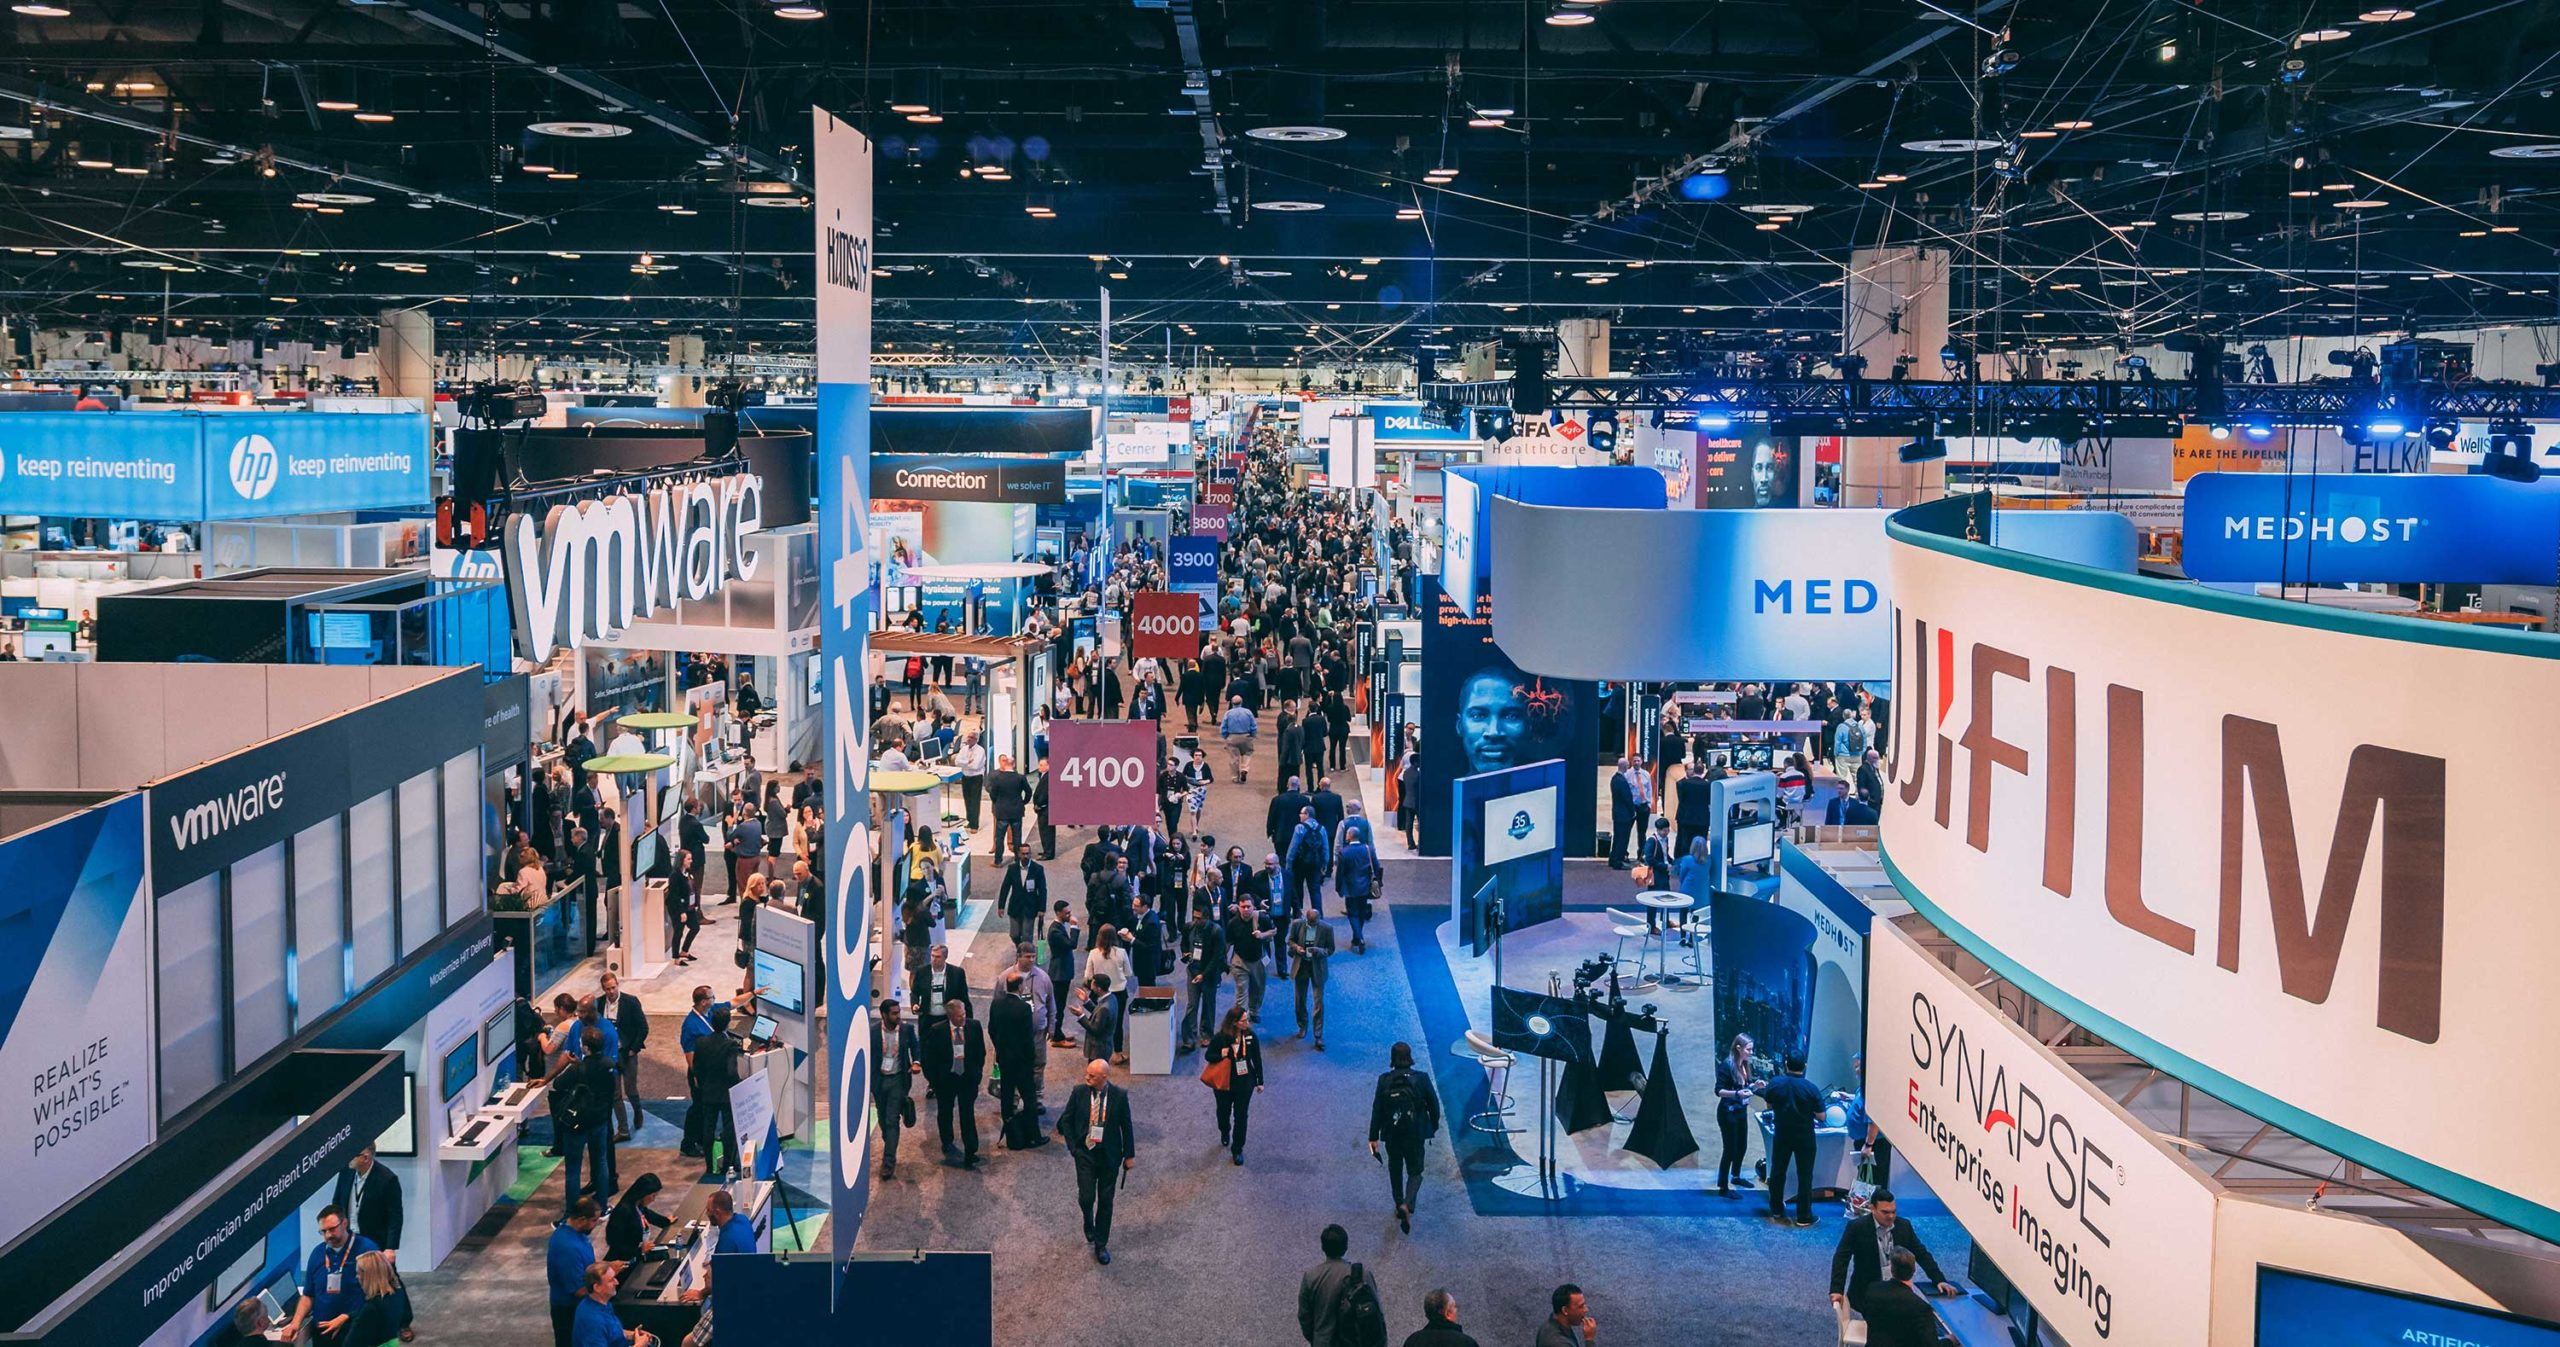 Join WELL at HIMSS19 and see us in action!